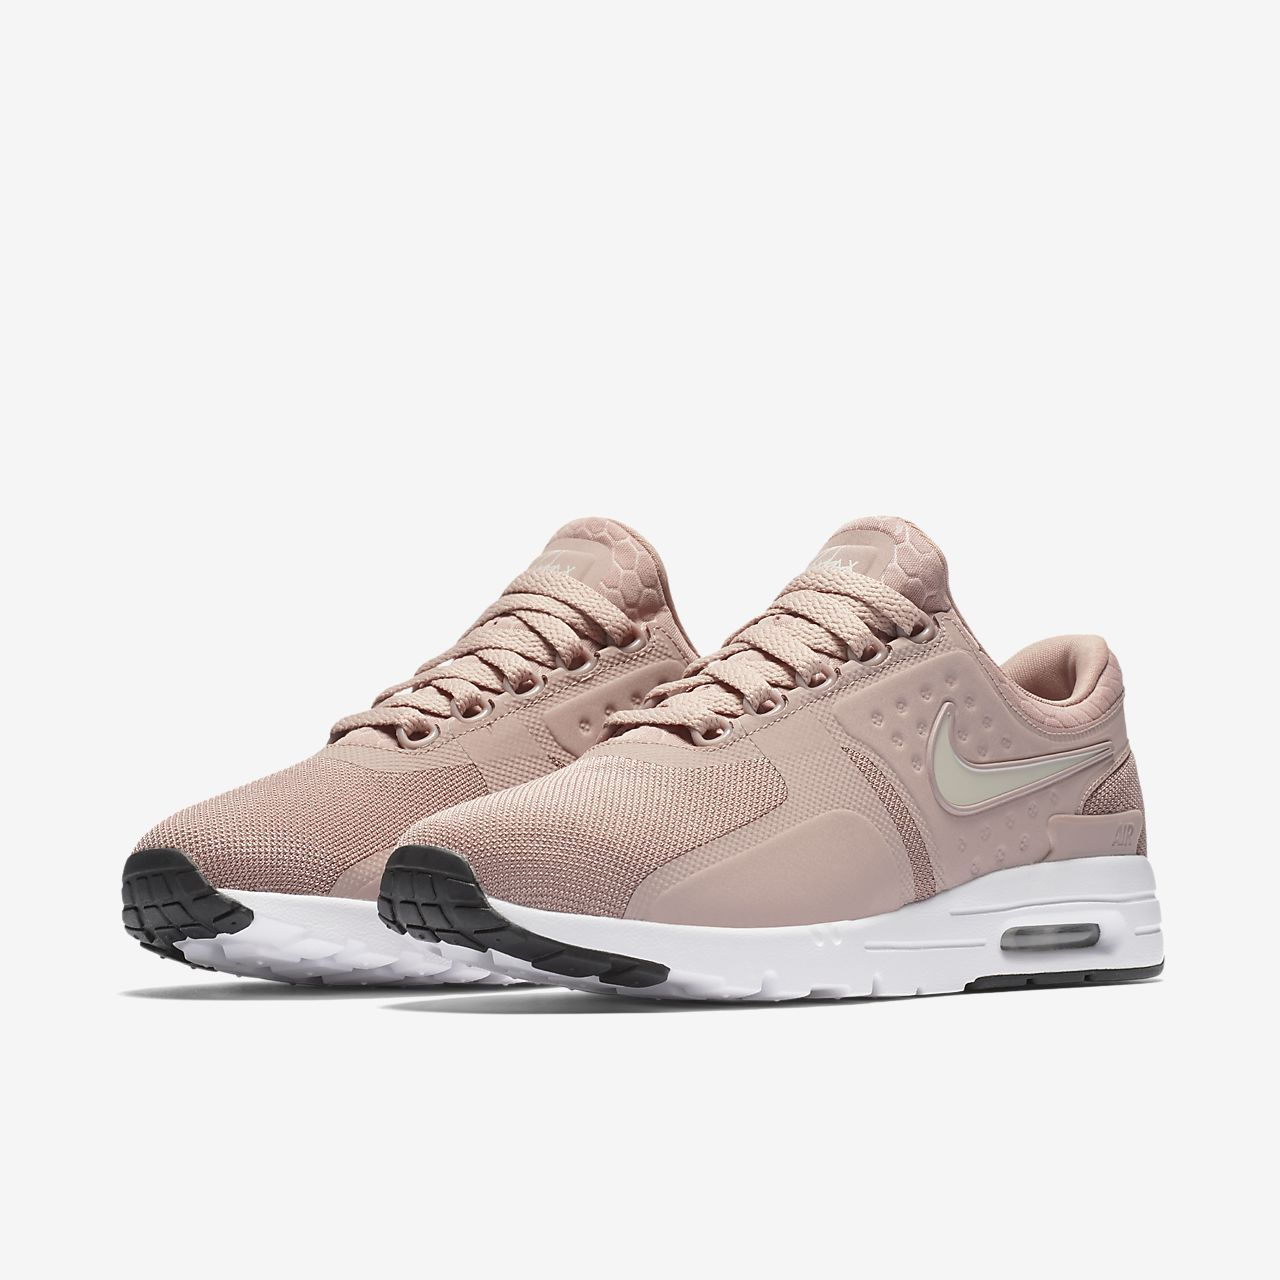 quality design 6e369 ad88c Nike Air Max Zero Women's Shoe | Shoes in 2019 | Sneakers ...